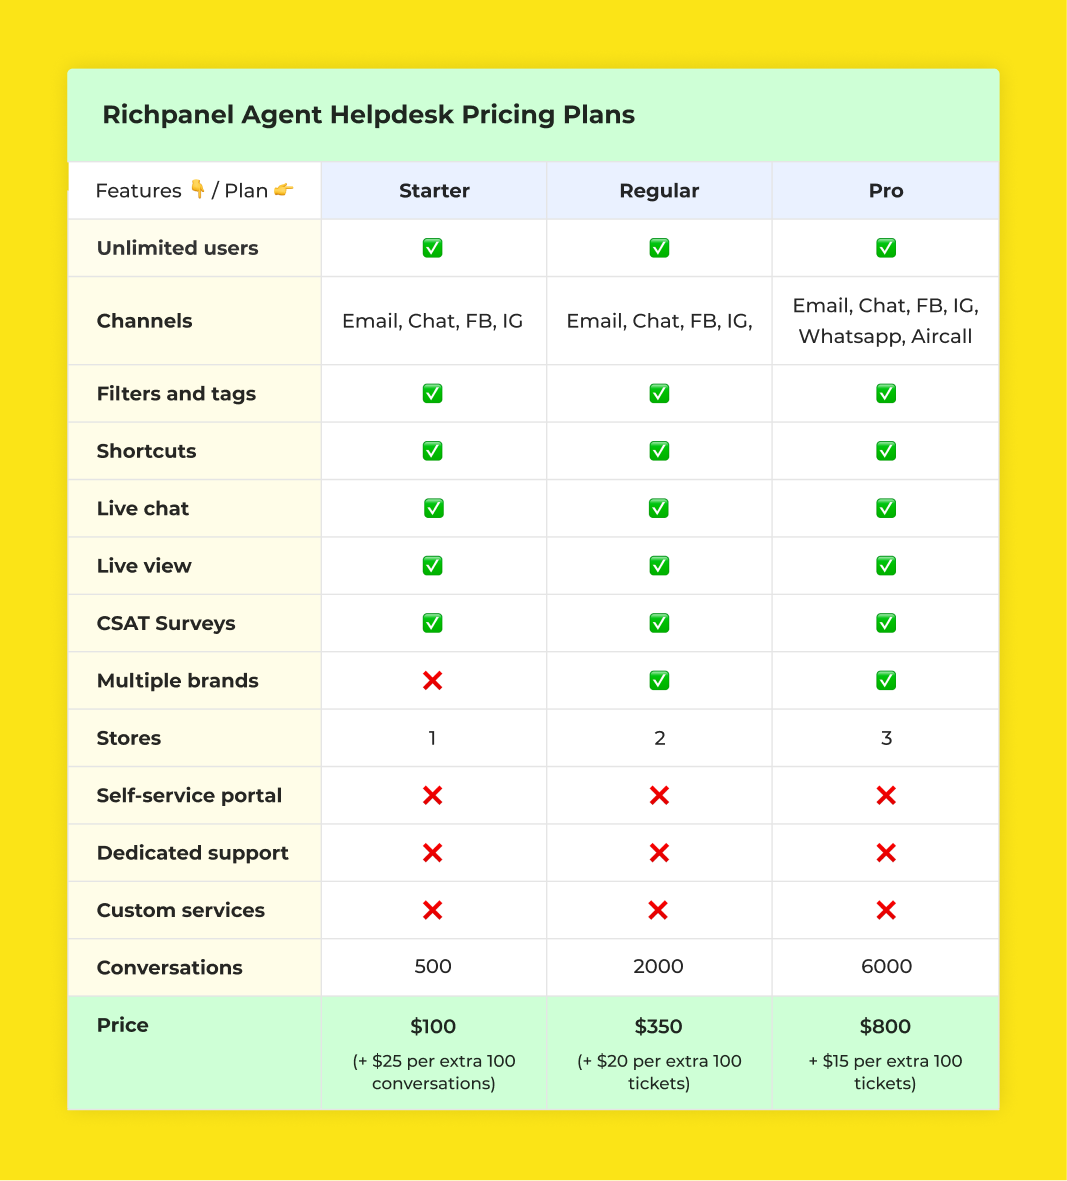 Richpanel Agent Helpdesk Pricing Plans